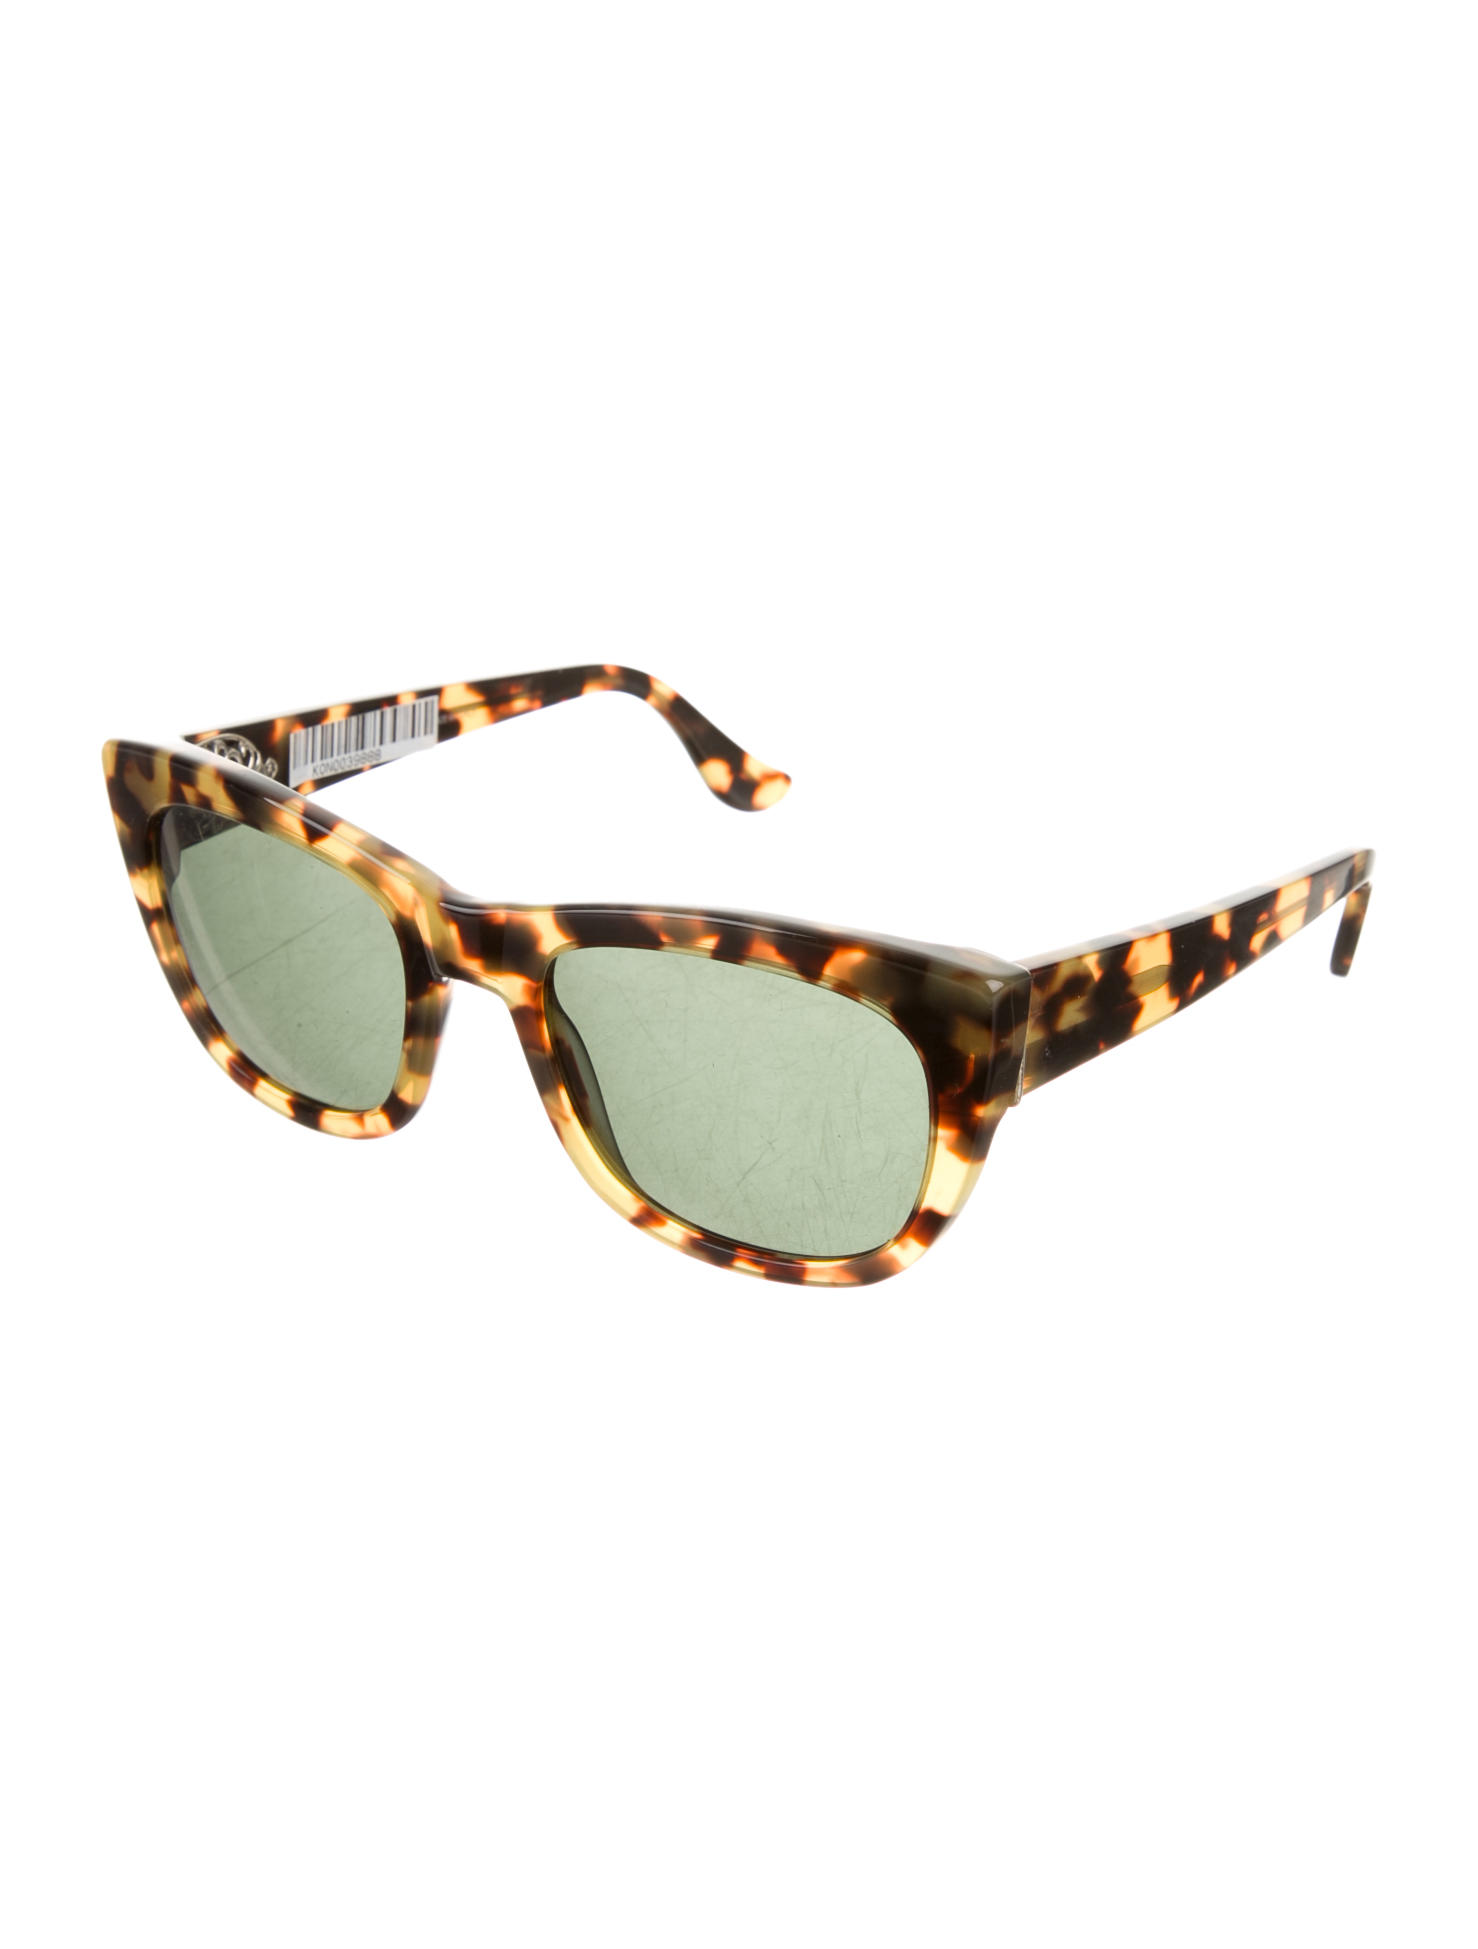 c2c2b7b45947 CHROME HEARTS Women s Brown and tan tortoiseshell SUNGLASSES - Shop ...